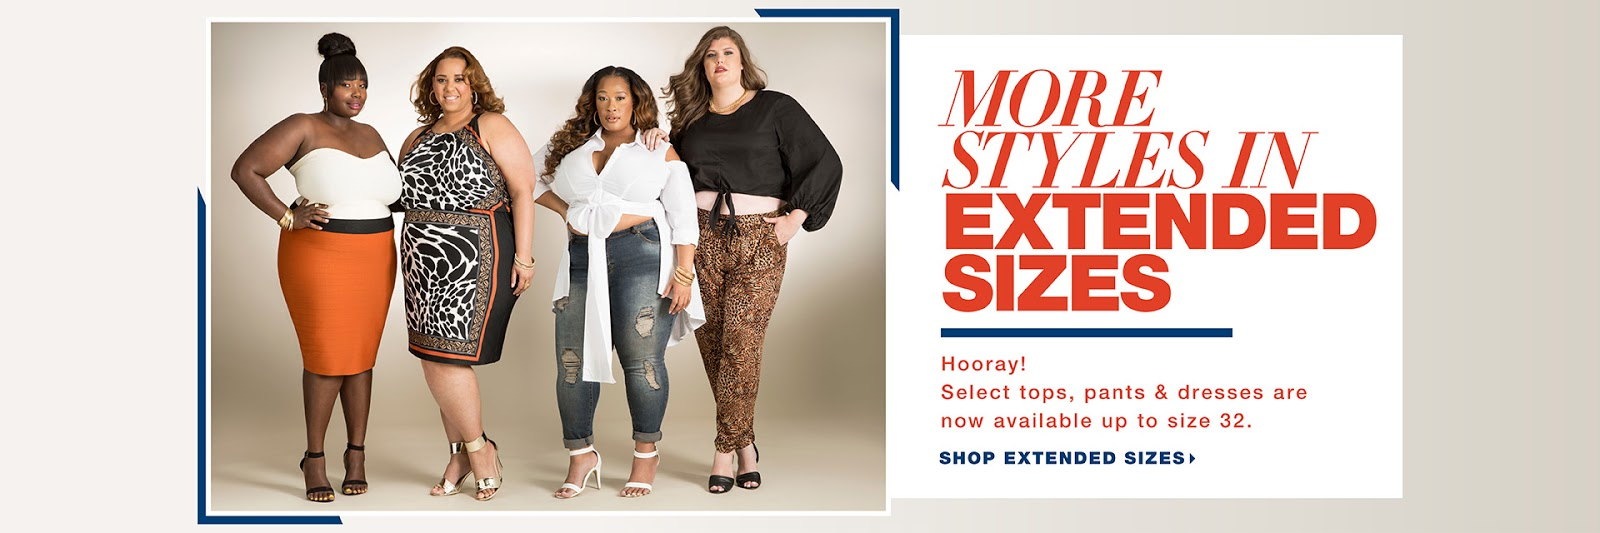 2f3f240f46f63 Plus Size Retailer Ashley Stewart Fall 2016 Extended Sizes Campaign ...